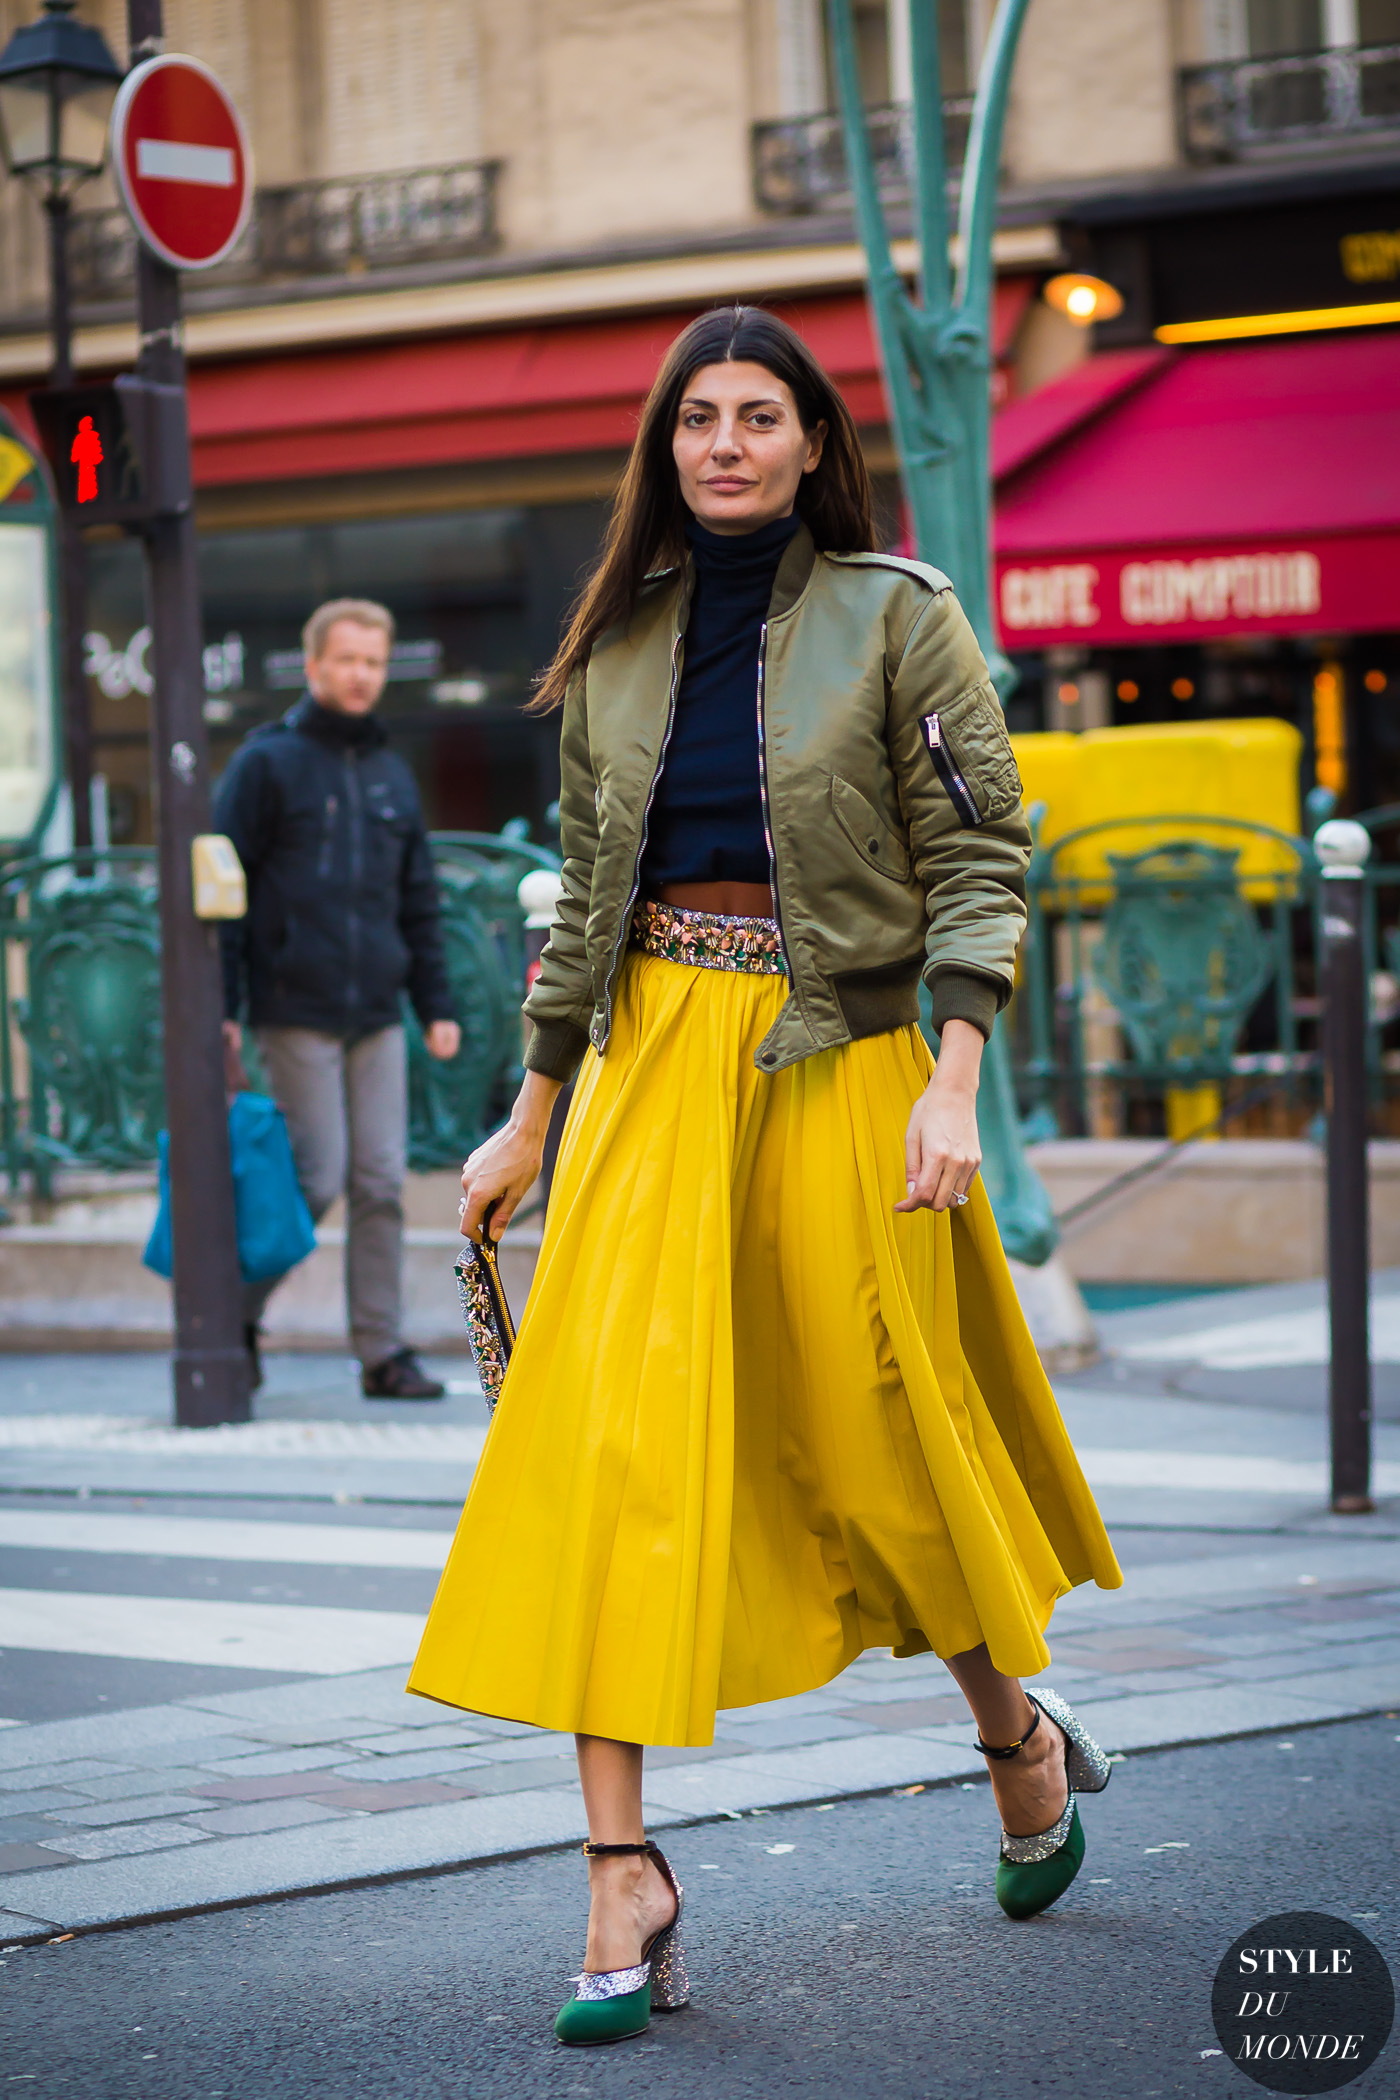 Giovanna Battaglia Street Style Street Fashion Streetsnaps by STYLEDUMONDE Street Style Fashion Photography